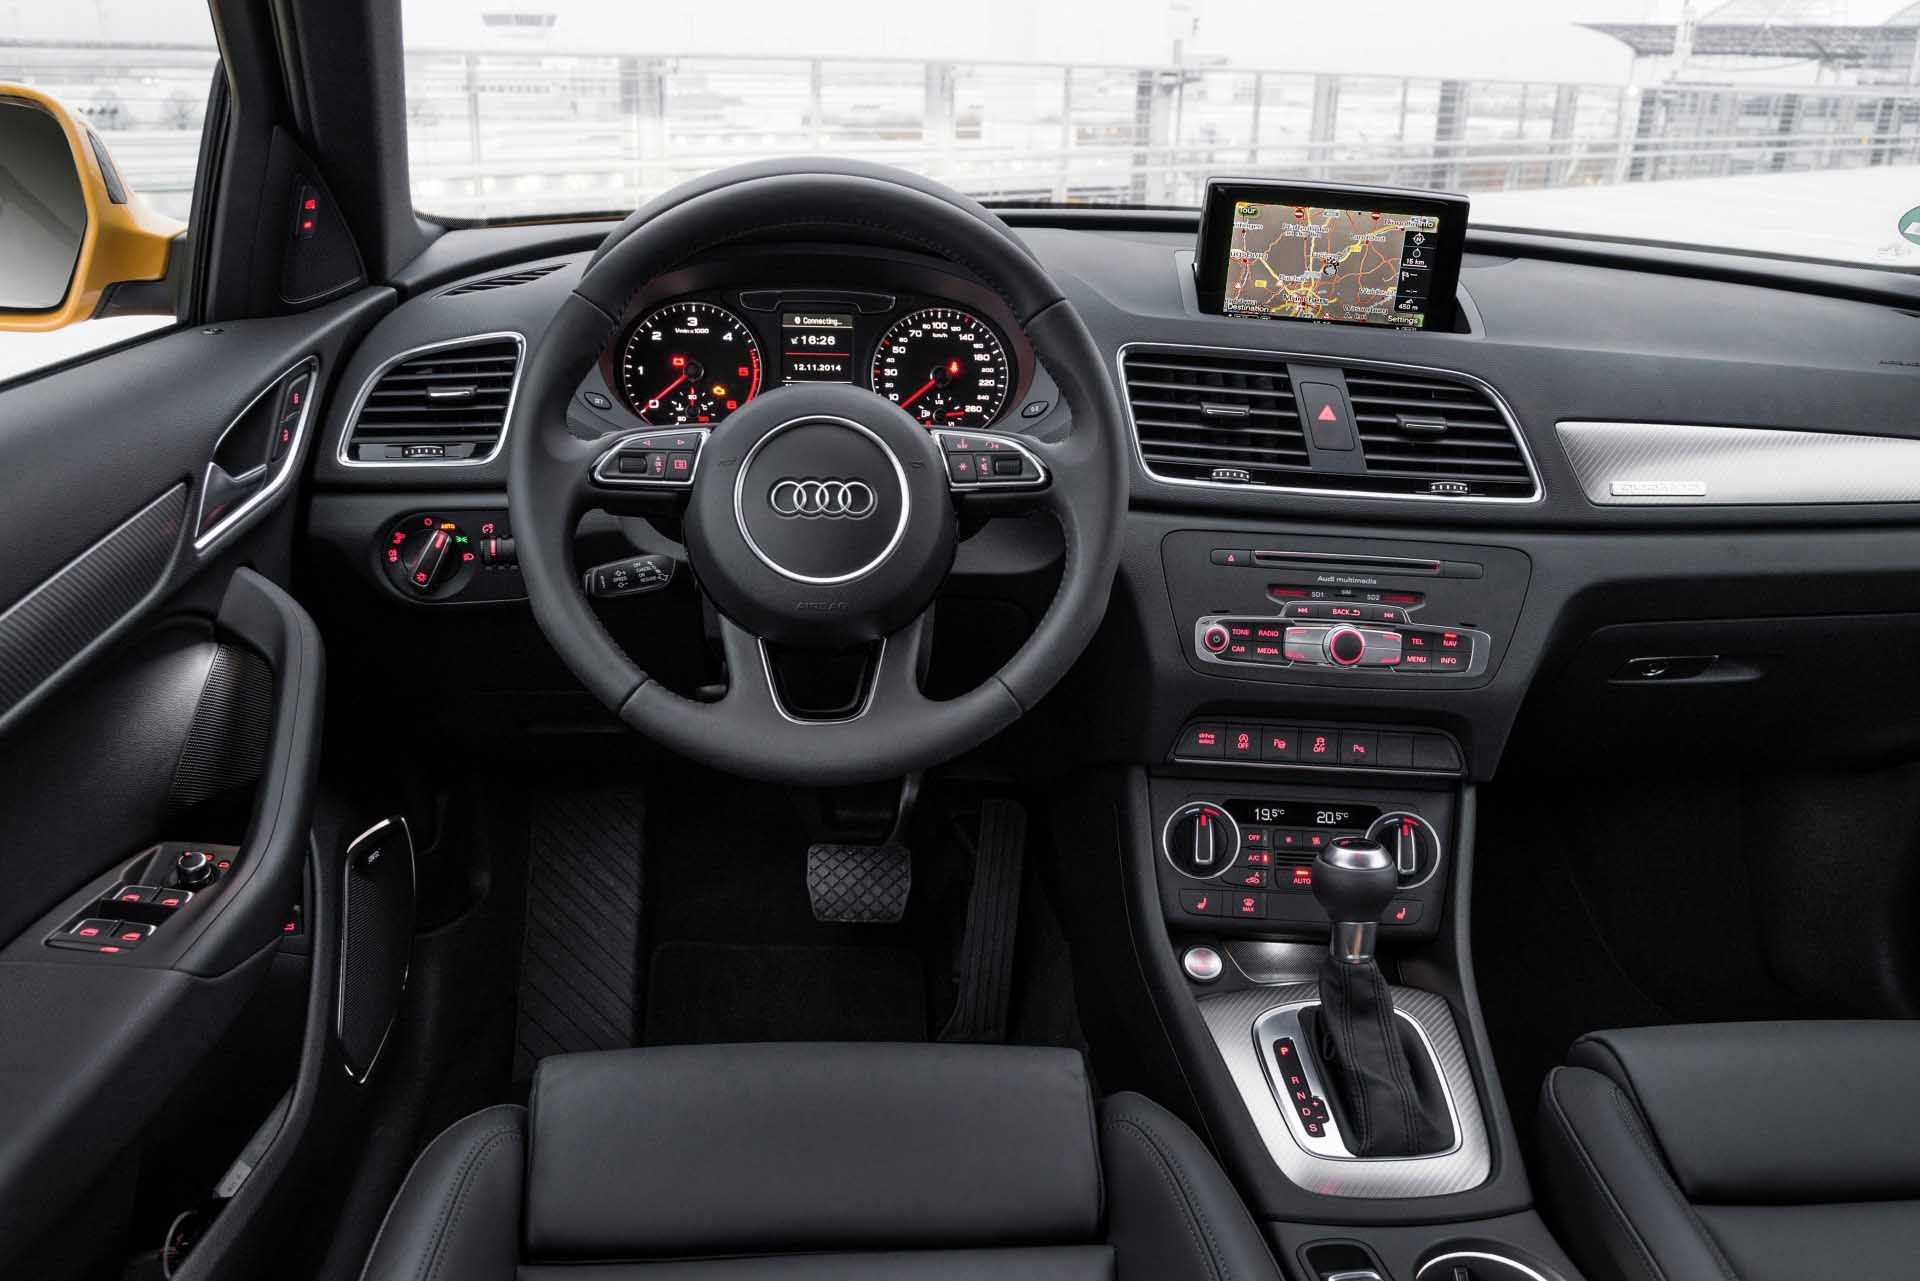 10 Awesome Audi Q3 Inside View Images Cars Pinterest Audi